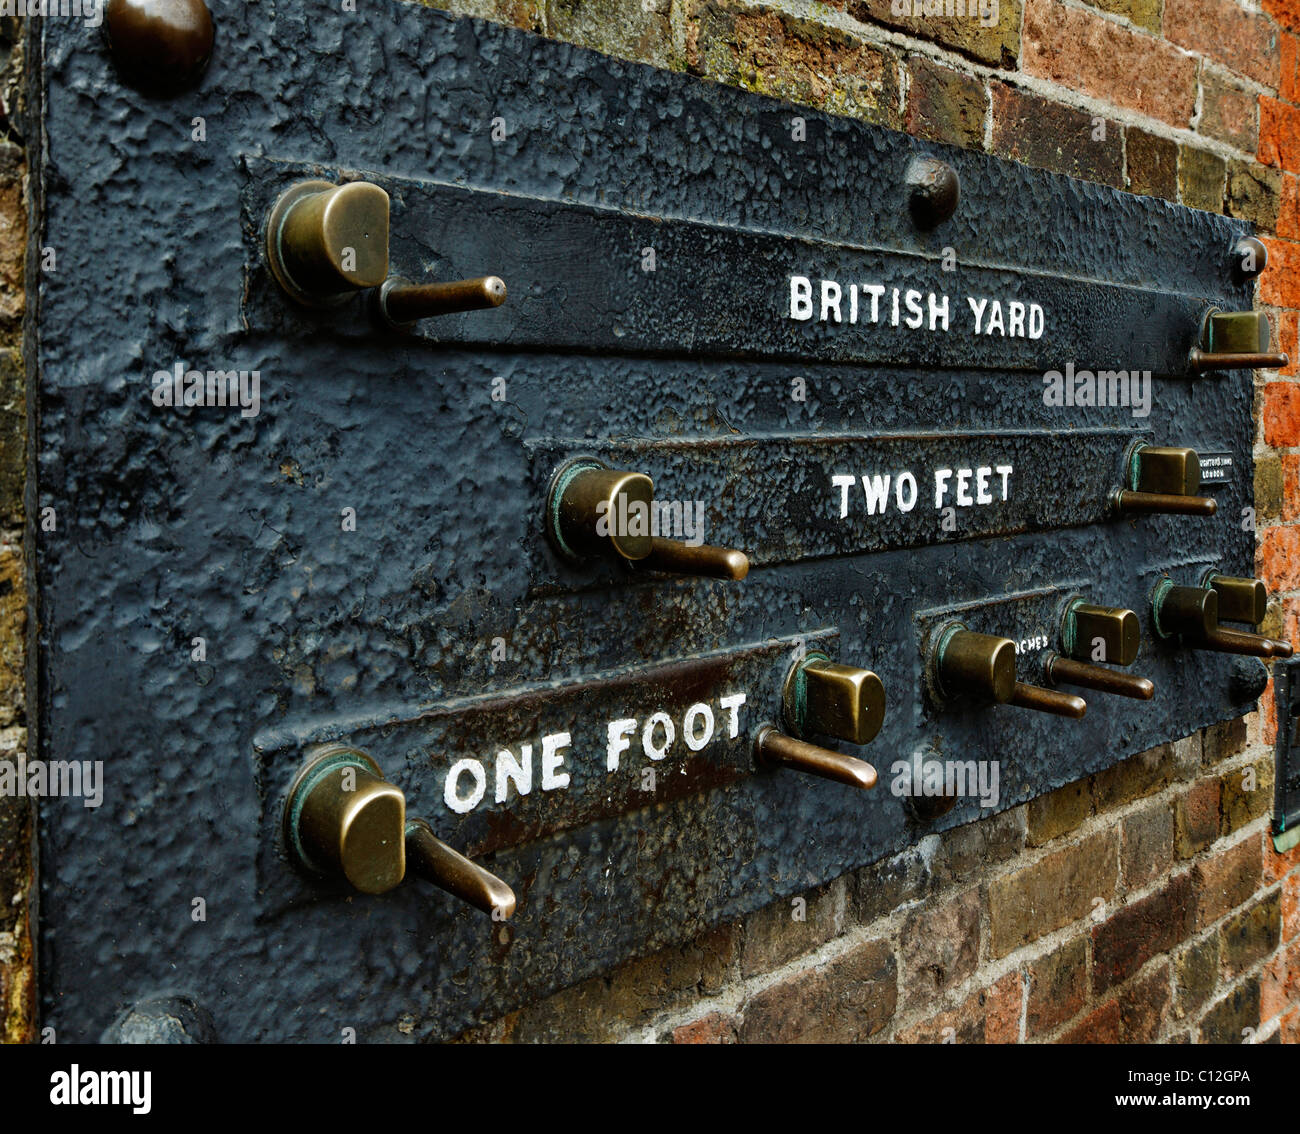 The Public Imperial measurement gauge at the Royal Observatory in Greenwich, London. - Stock Image